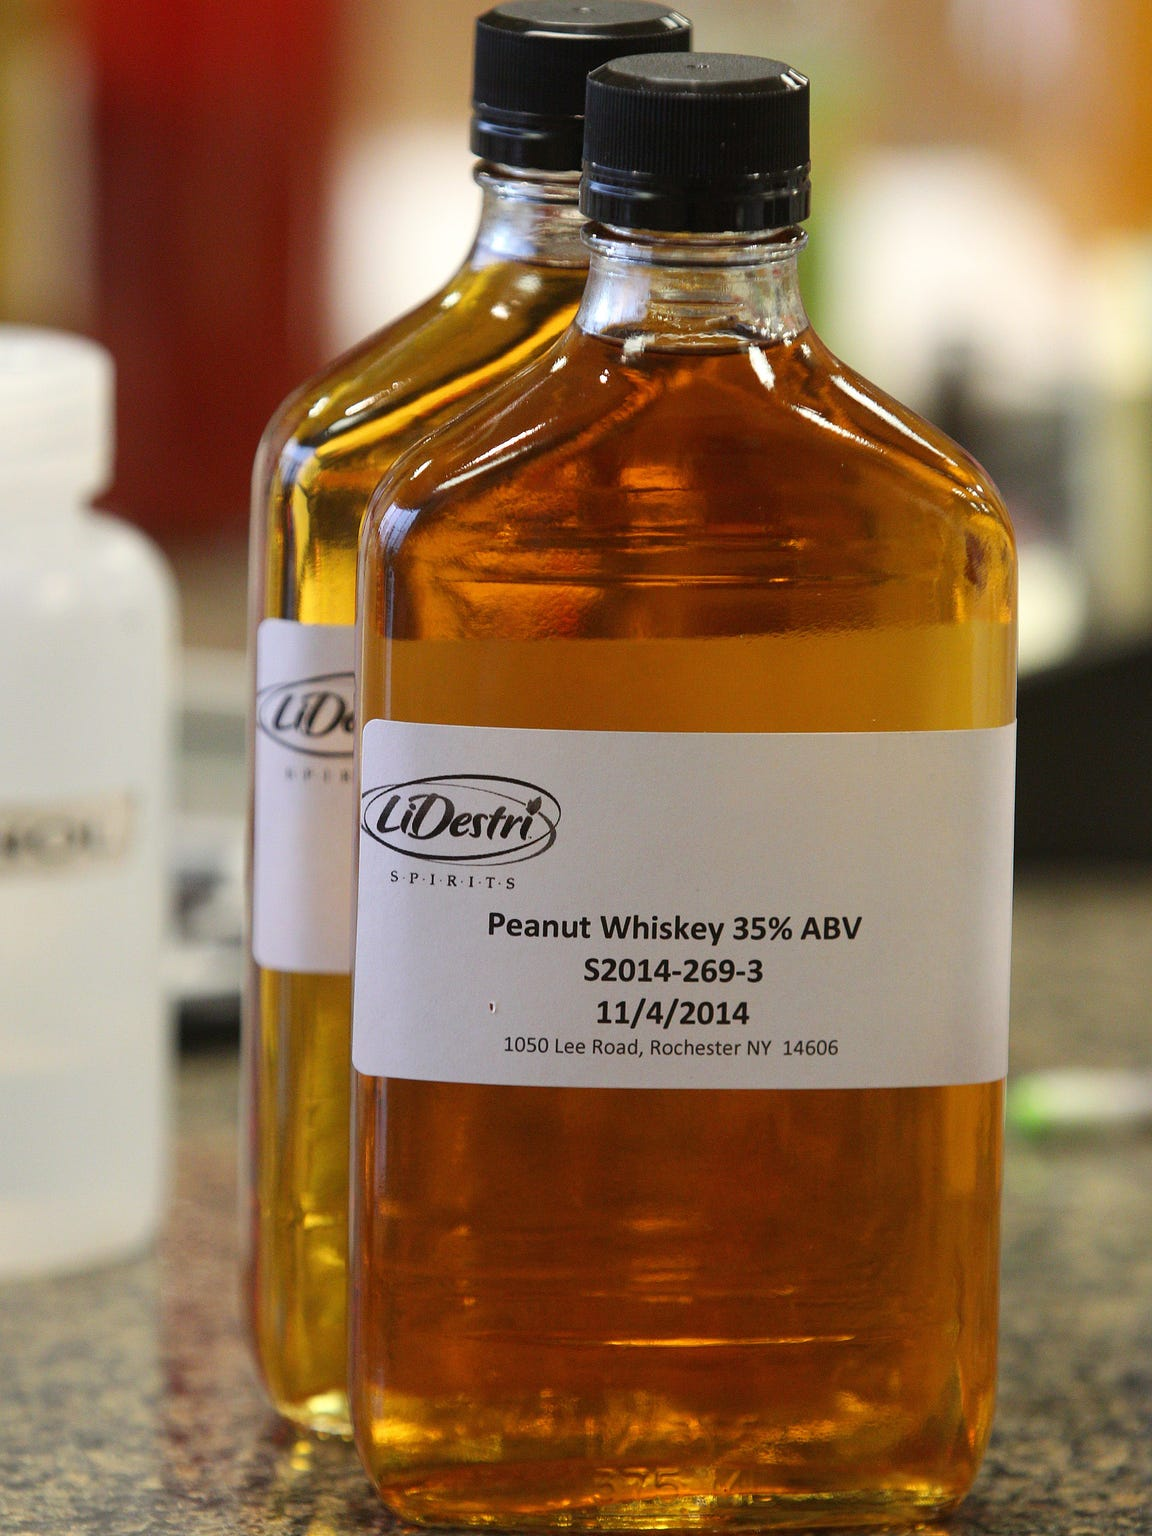 One of the trial flavors made by the LiDestri Spirits